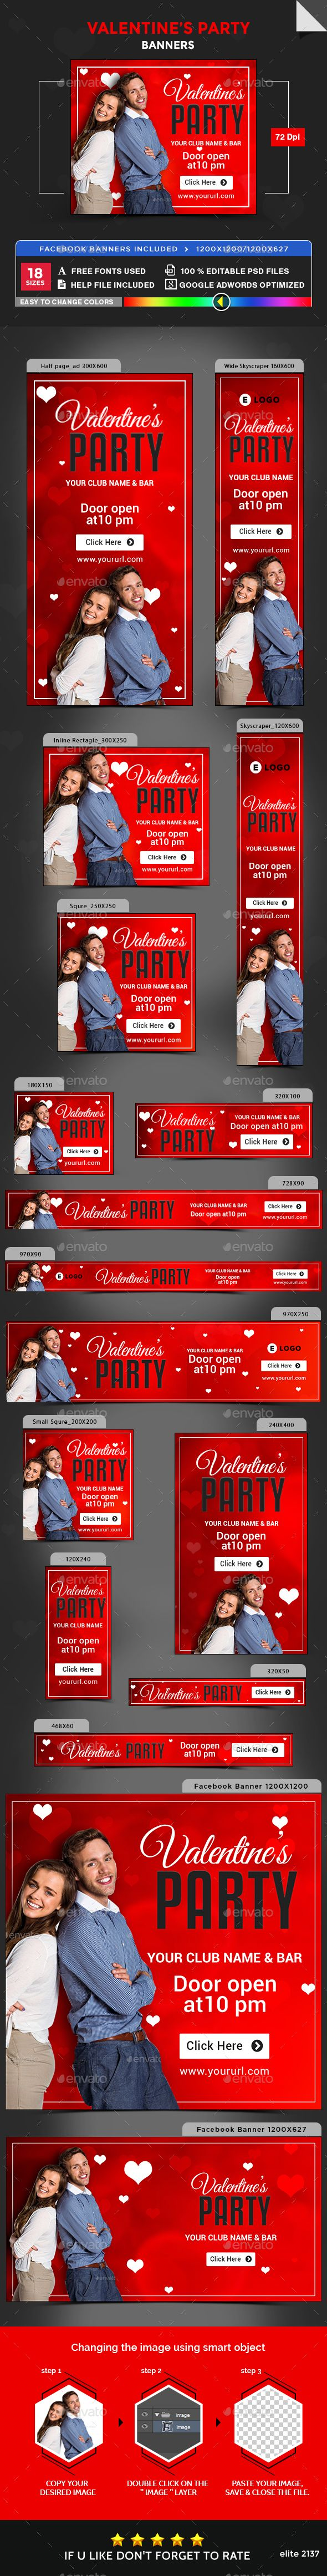 57 best 2.14 images on Pinterest | Valentines day, Templates and Drawing